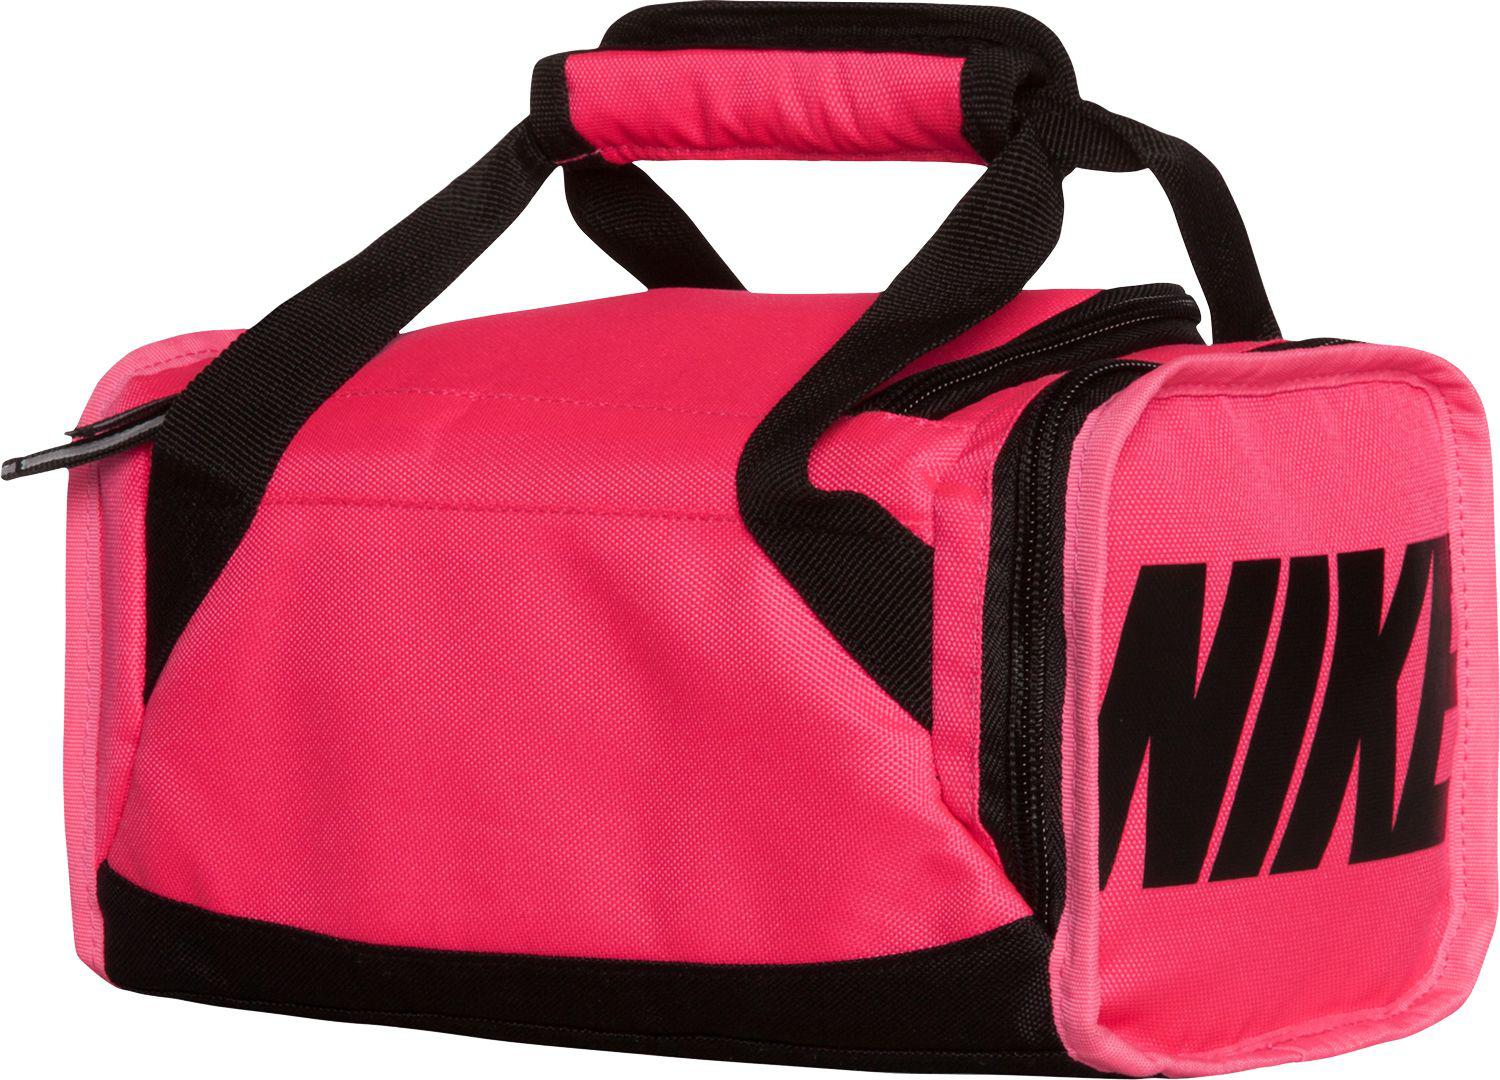 ebf3d8ded4 Lyst - Nike Lunch Bag in Pink for Men